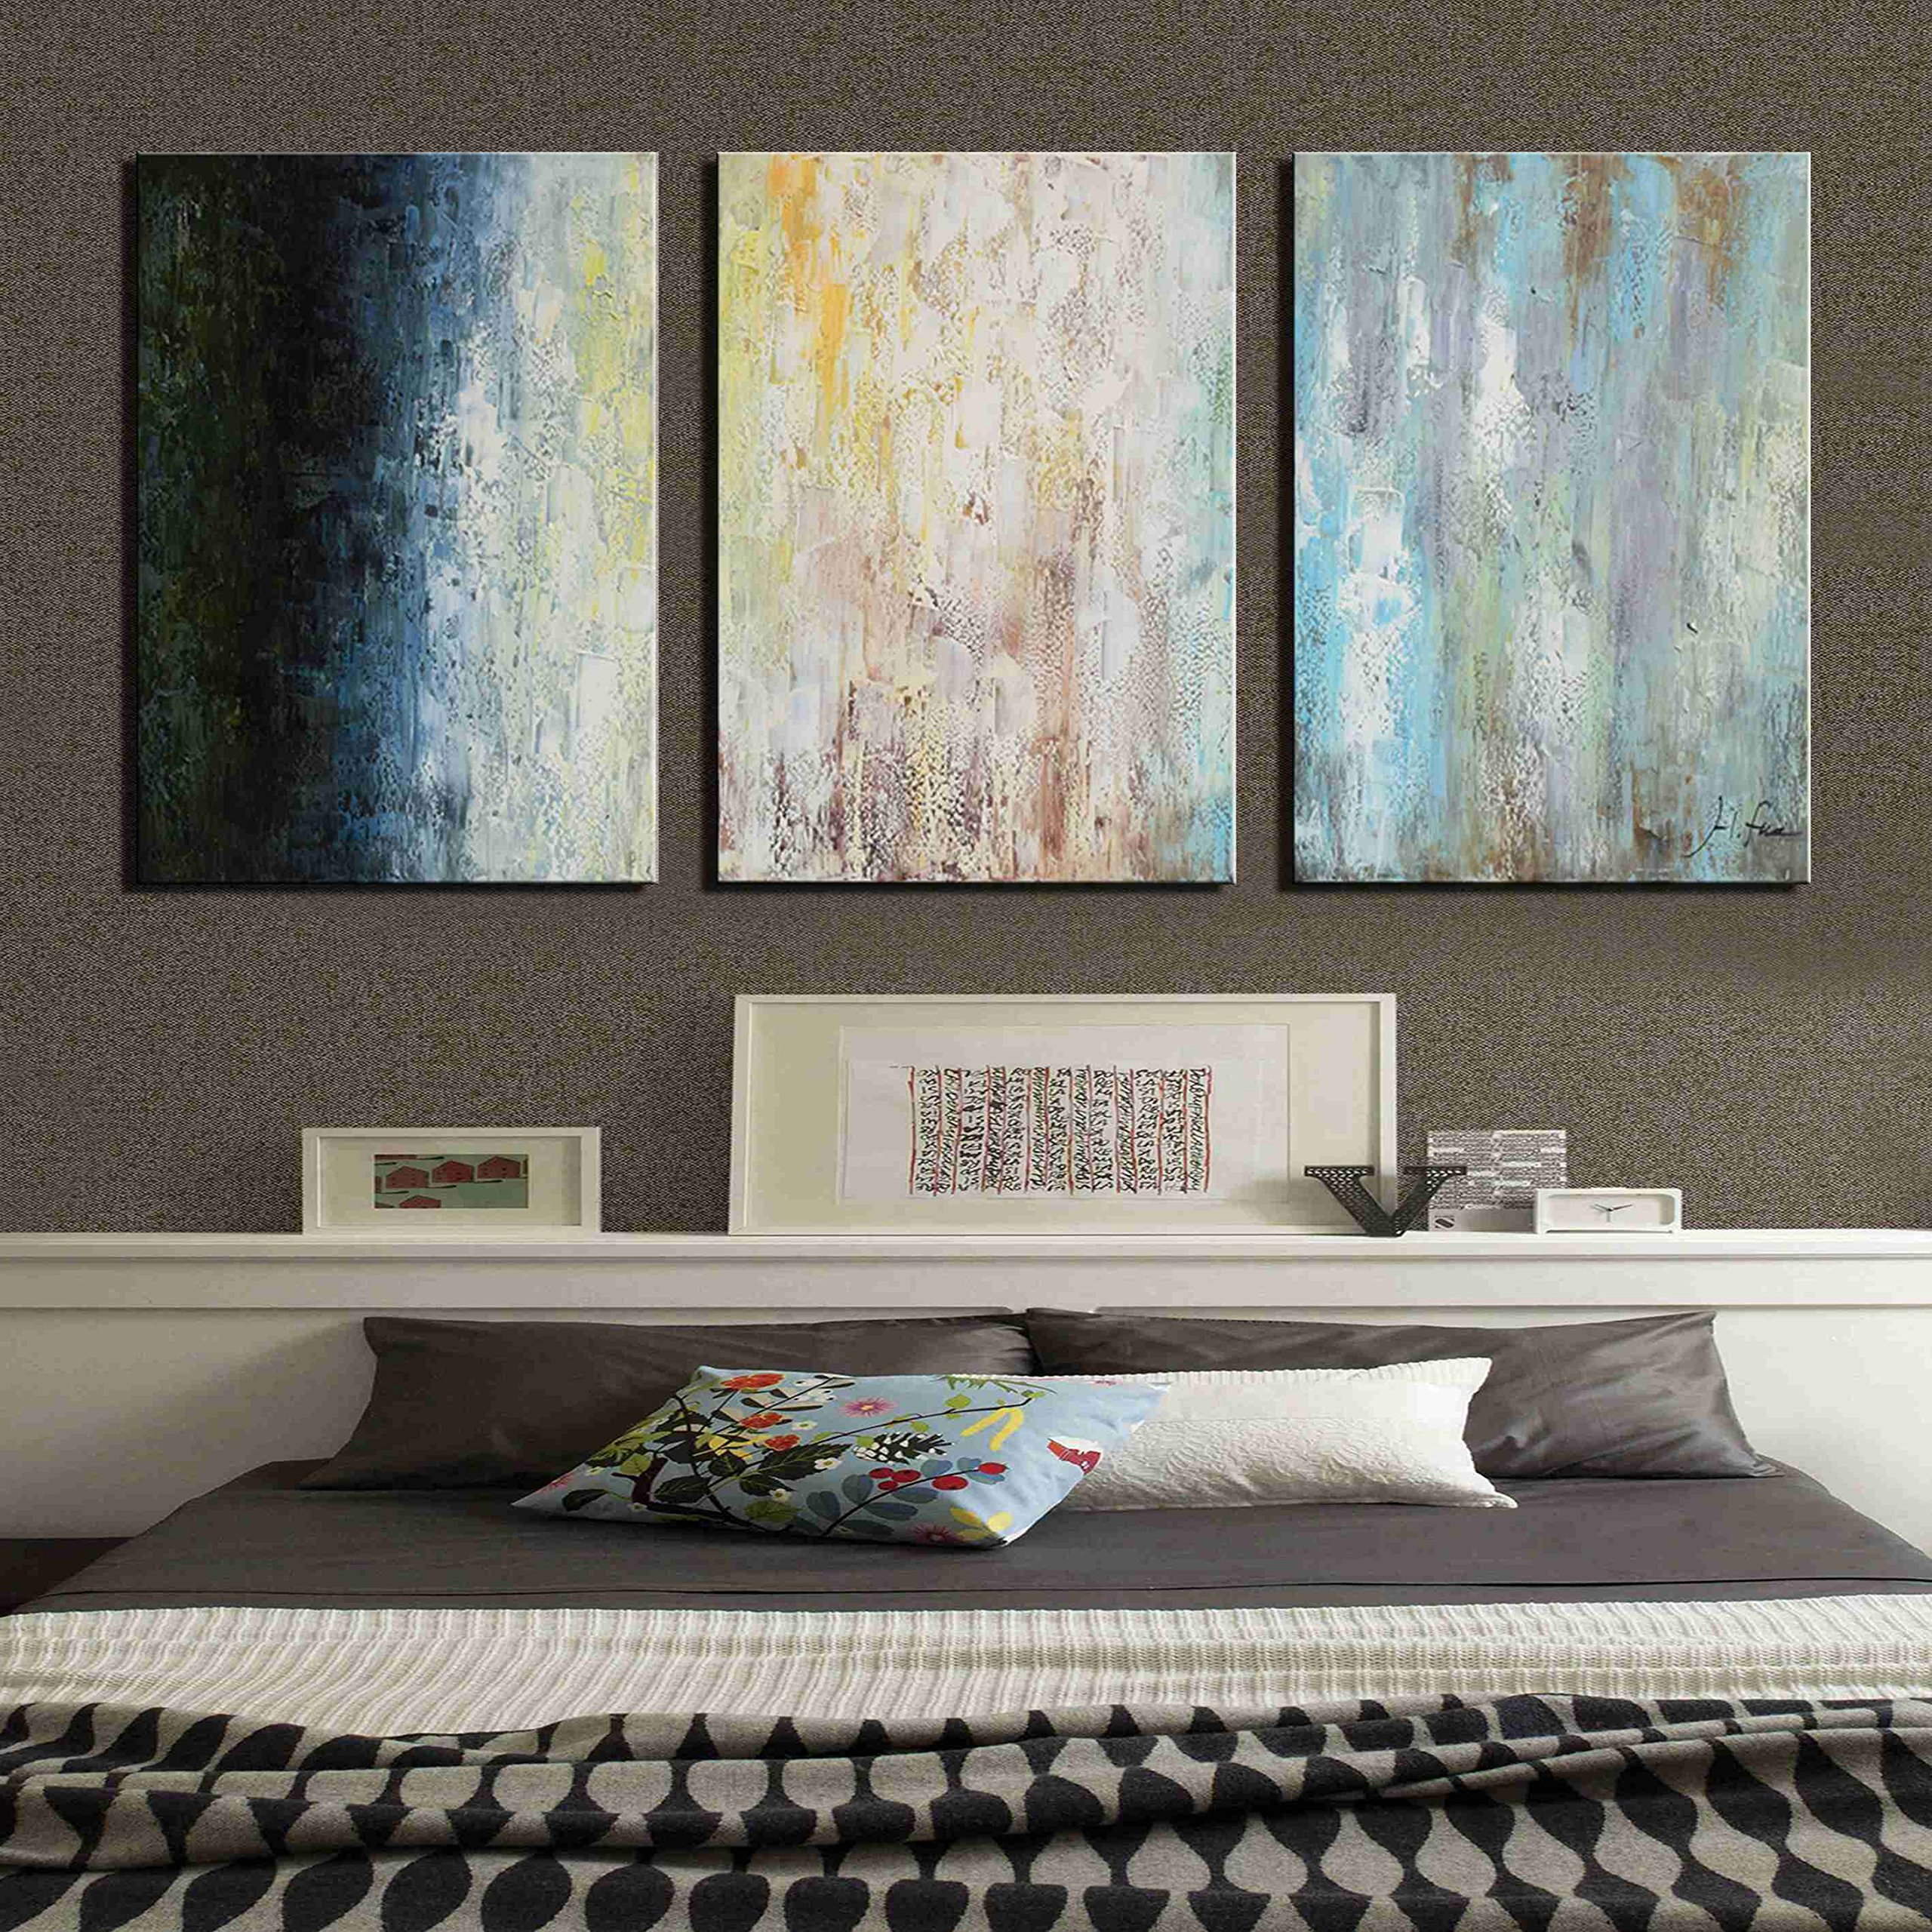 ARTLAND Hand-painted 24x48-inch 'Indifferent Smile'3-piece Gallery-wrapped Abstract Oil Painting on Canvas Wall Art Set by ARTLAND